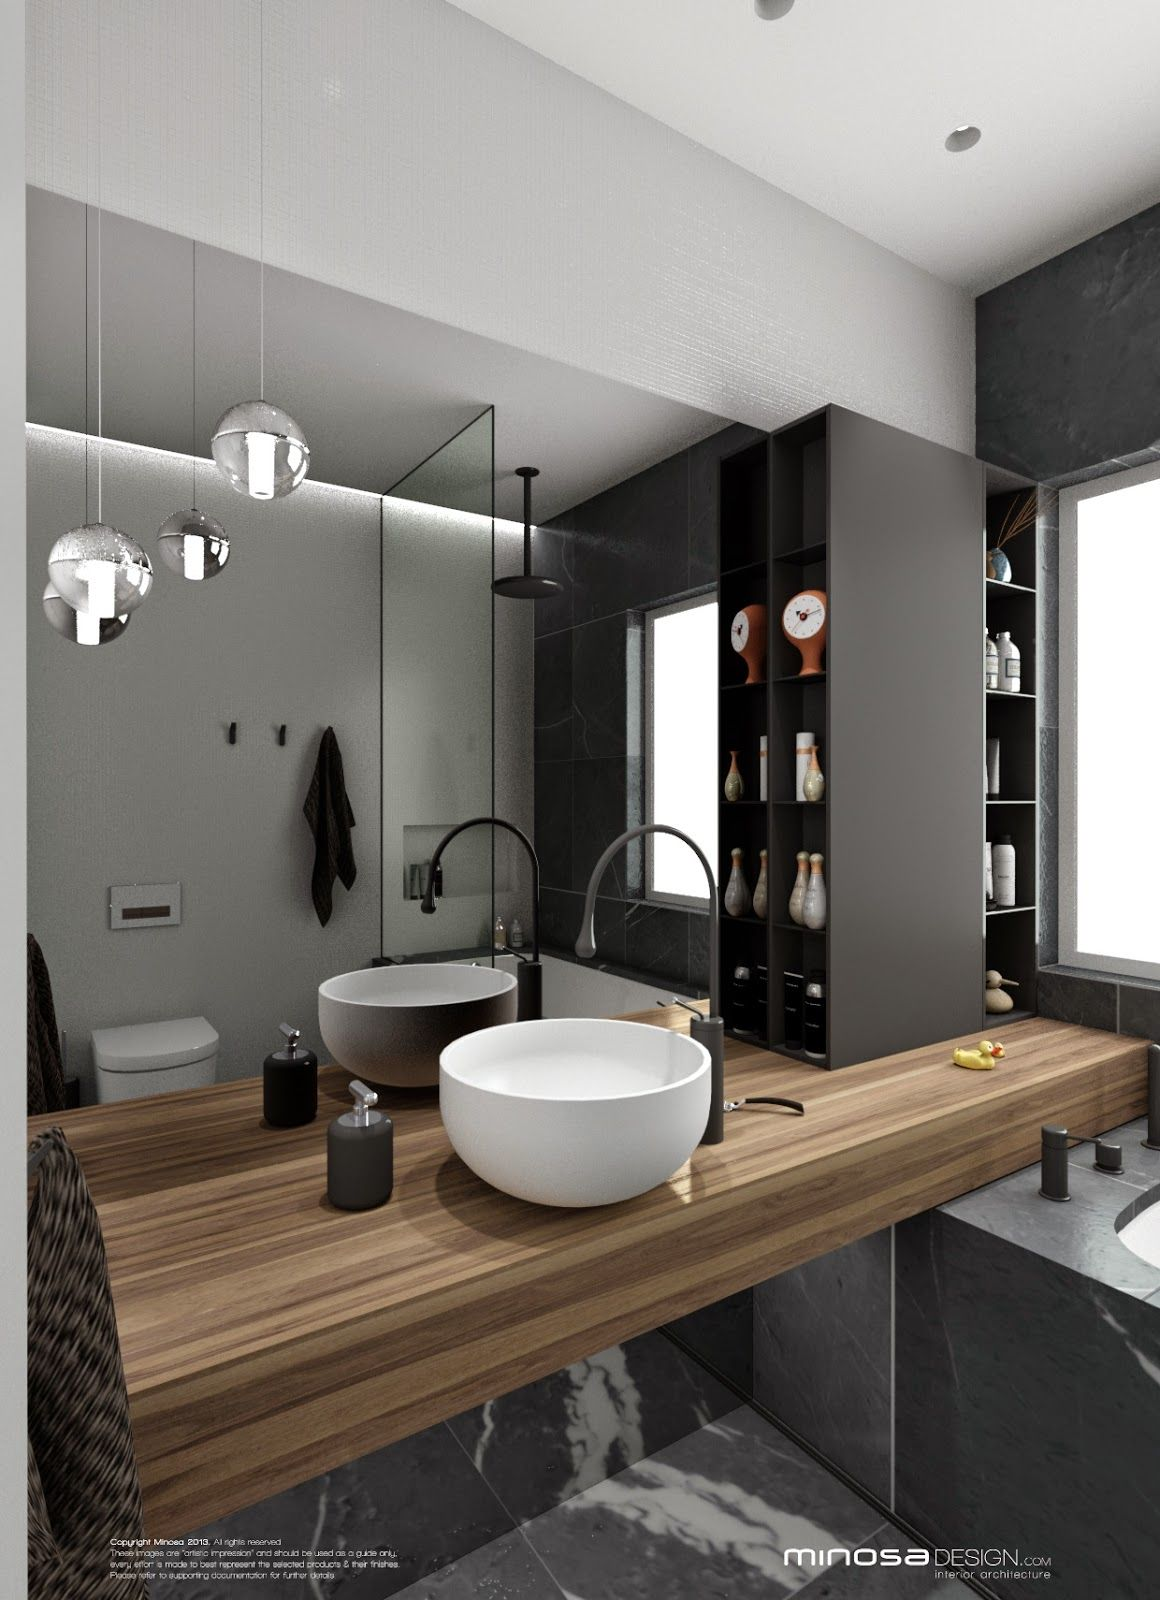 The Hero Of This Bathroom Design Is The Vanity The Palette Is Walnut Timber Pietra Grey Marble